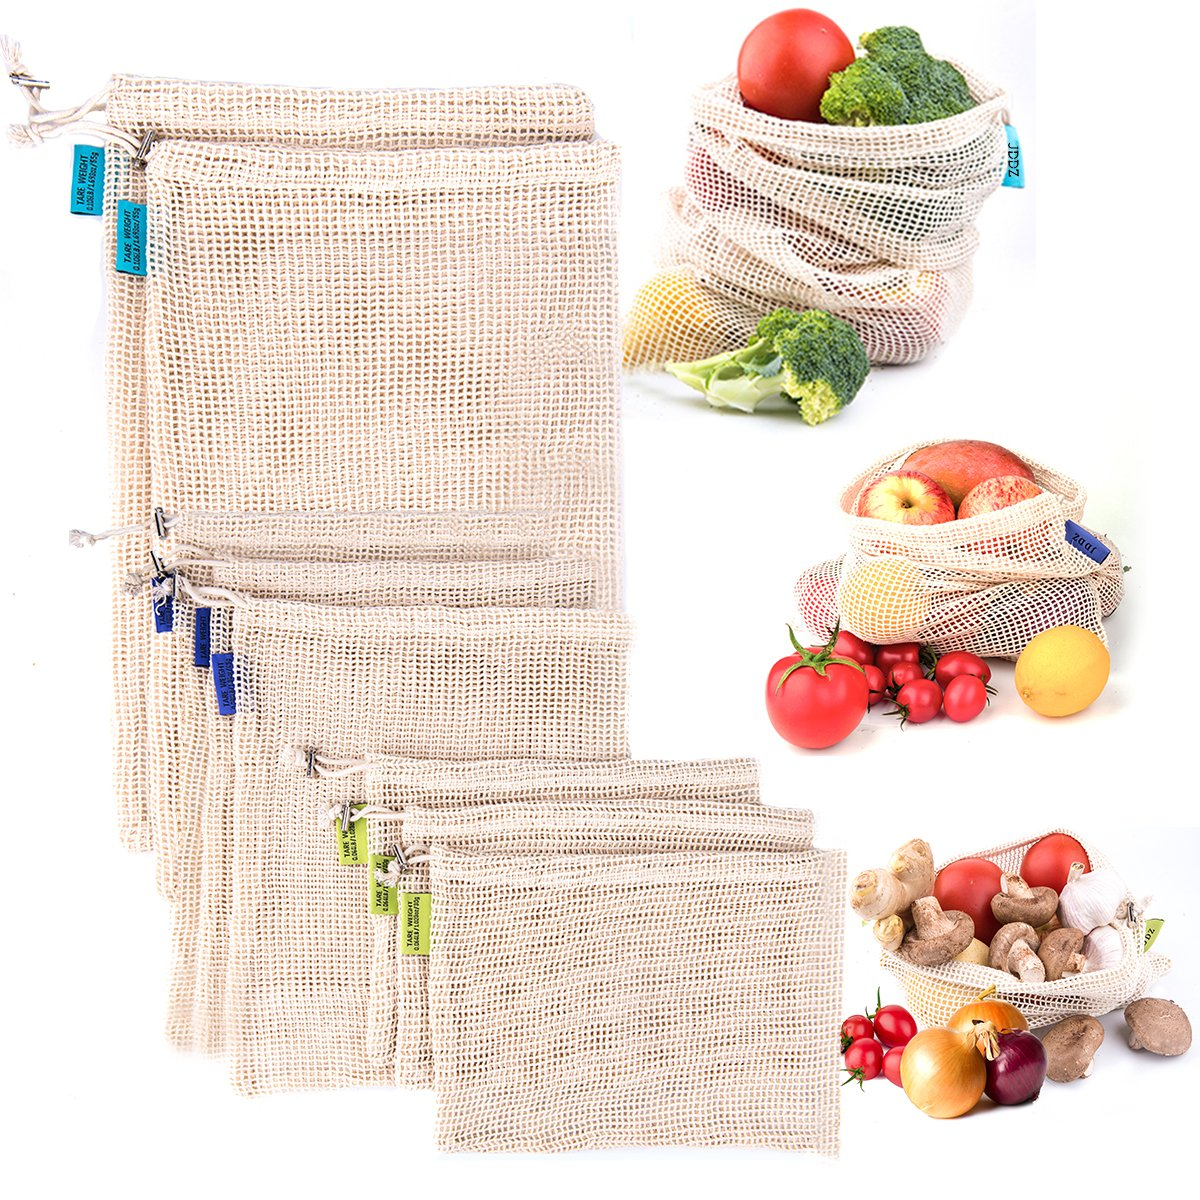 Eco-Friendly 100% Natural Pure Cotton Mesh Bag Reusable Produce Bag Small Medium Large Size Pack Mesh Cotton Shopping Storage